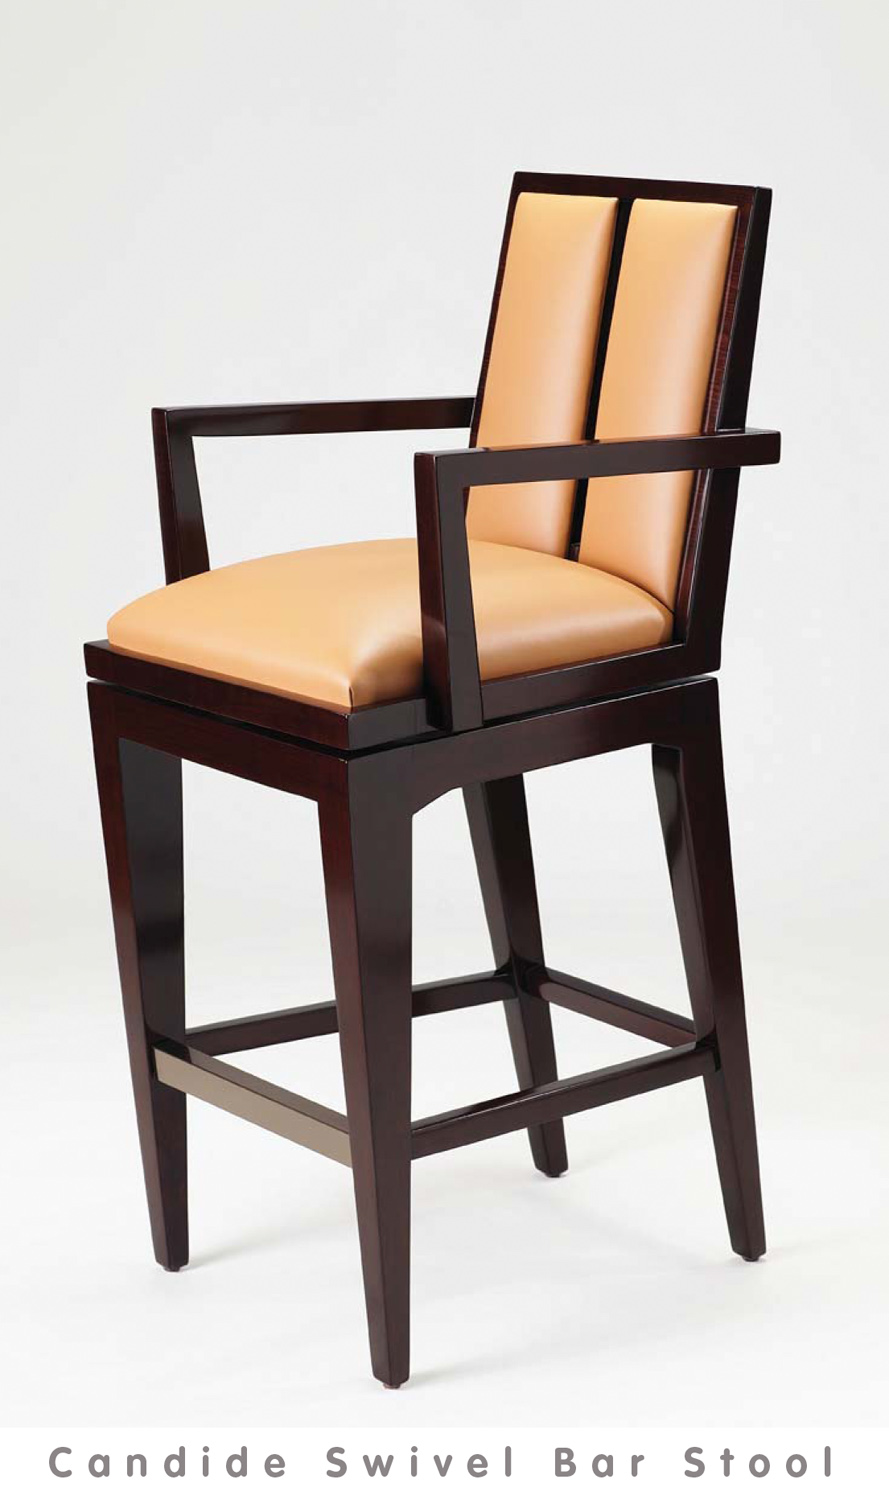 view: Candide Swivel Bar Stool Catalog Page